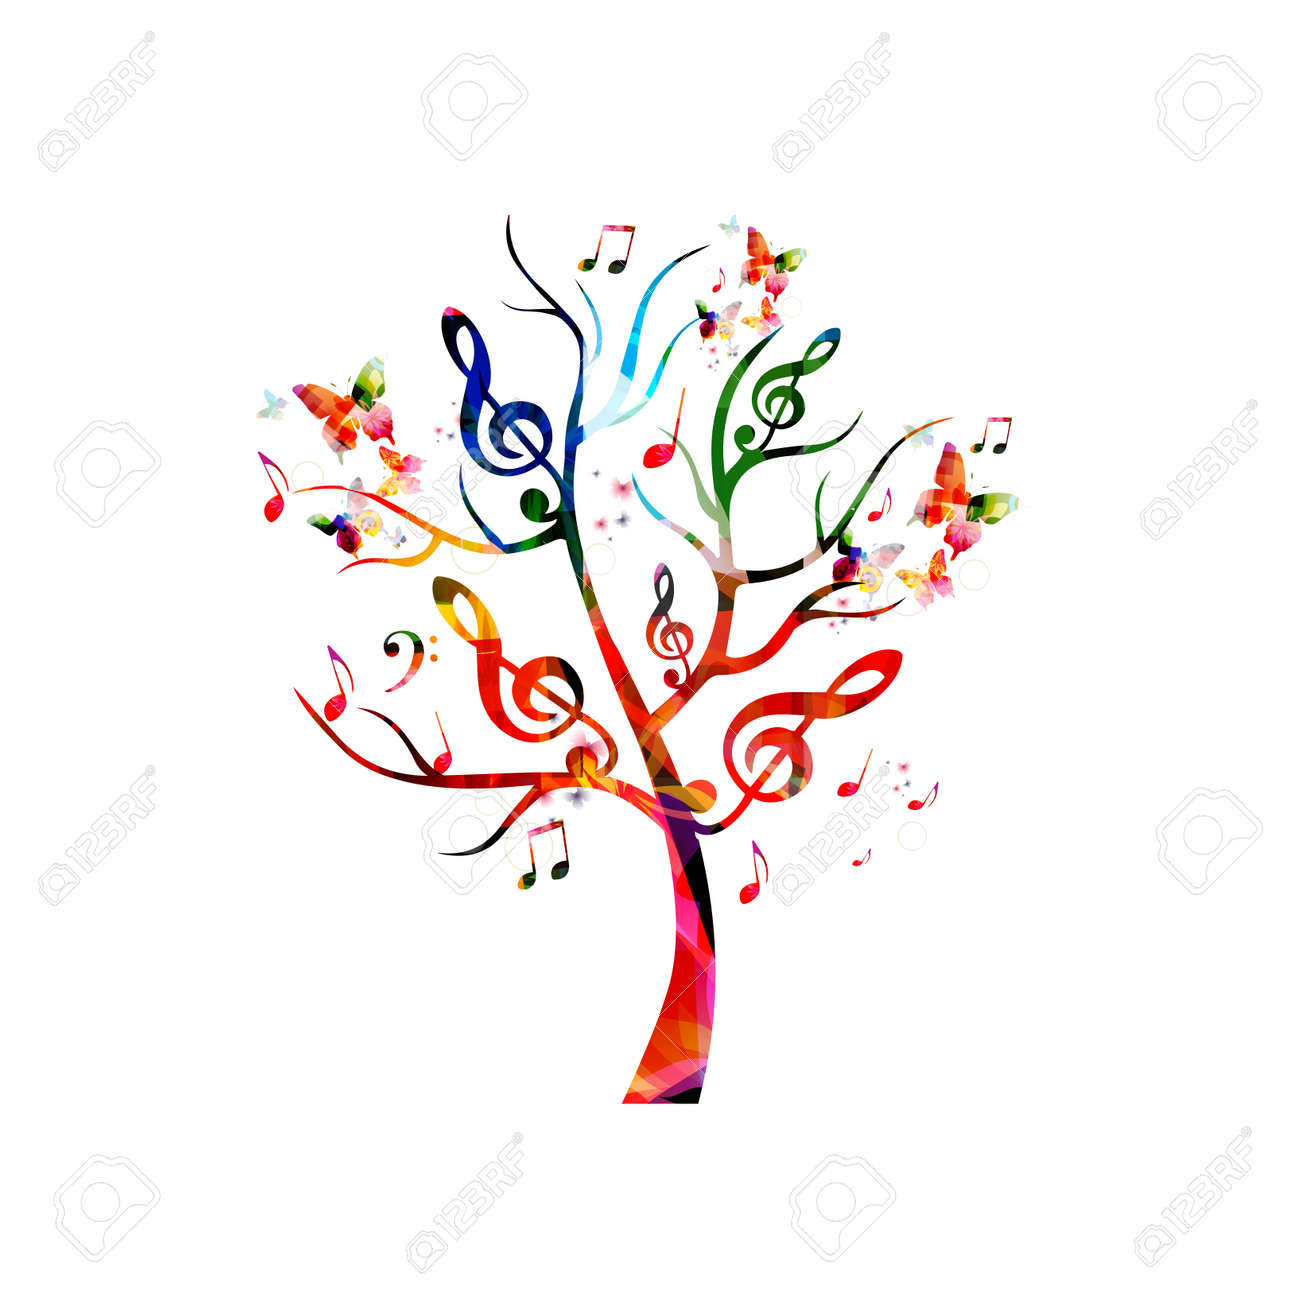 Colorful music tree with music notes and butterflies - 61586150